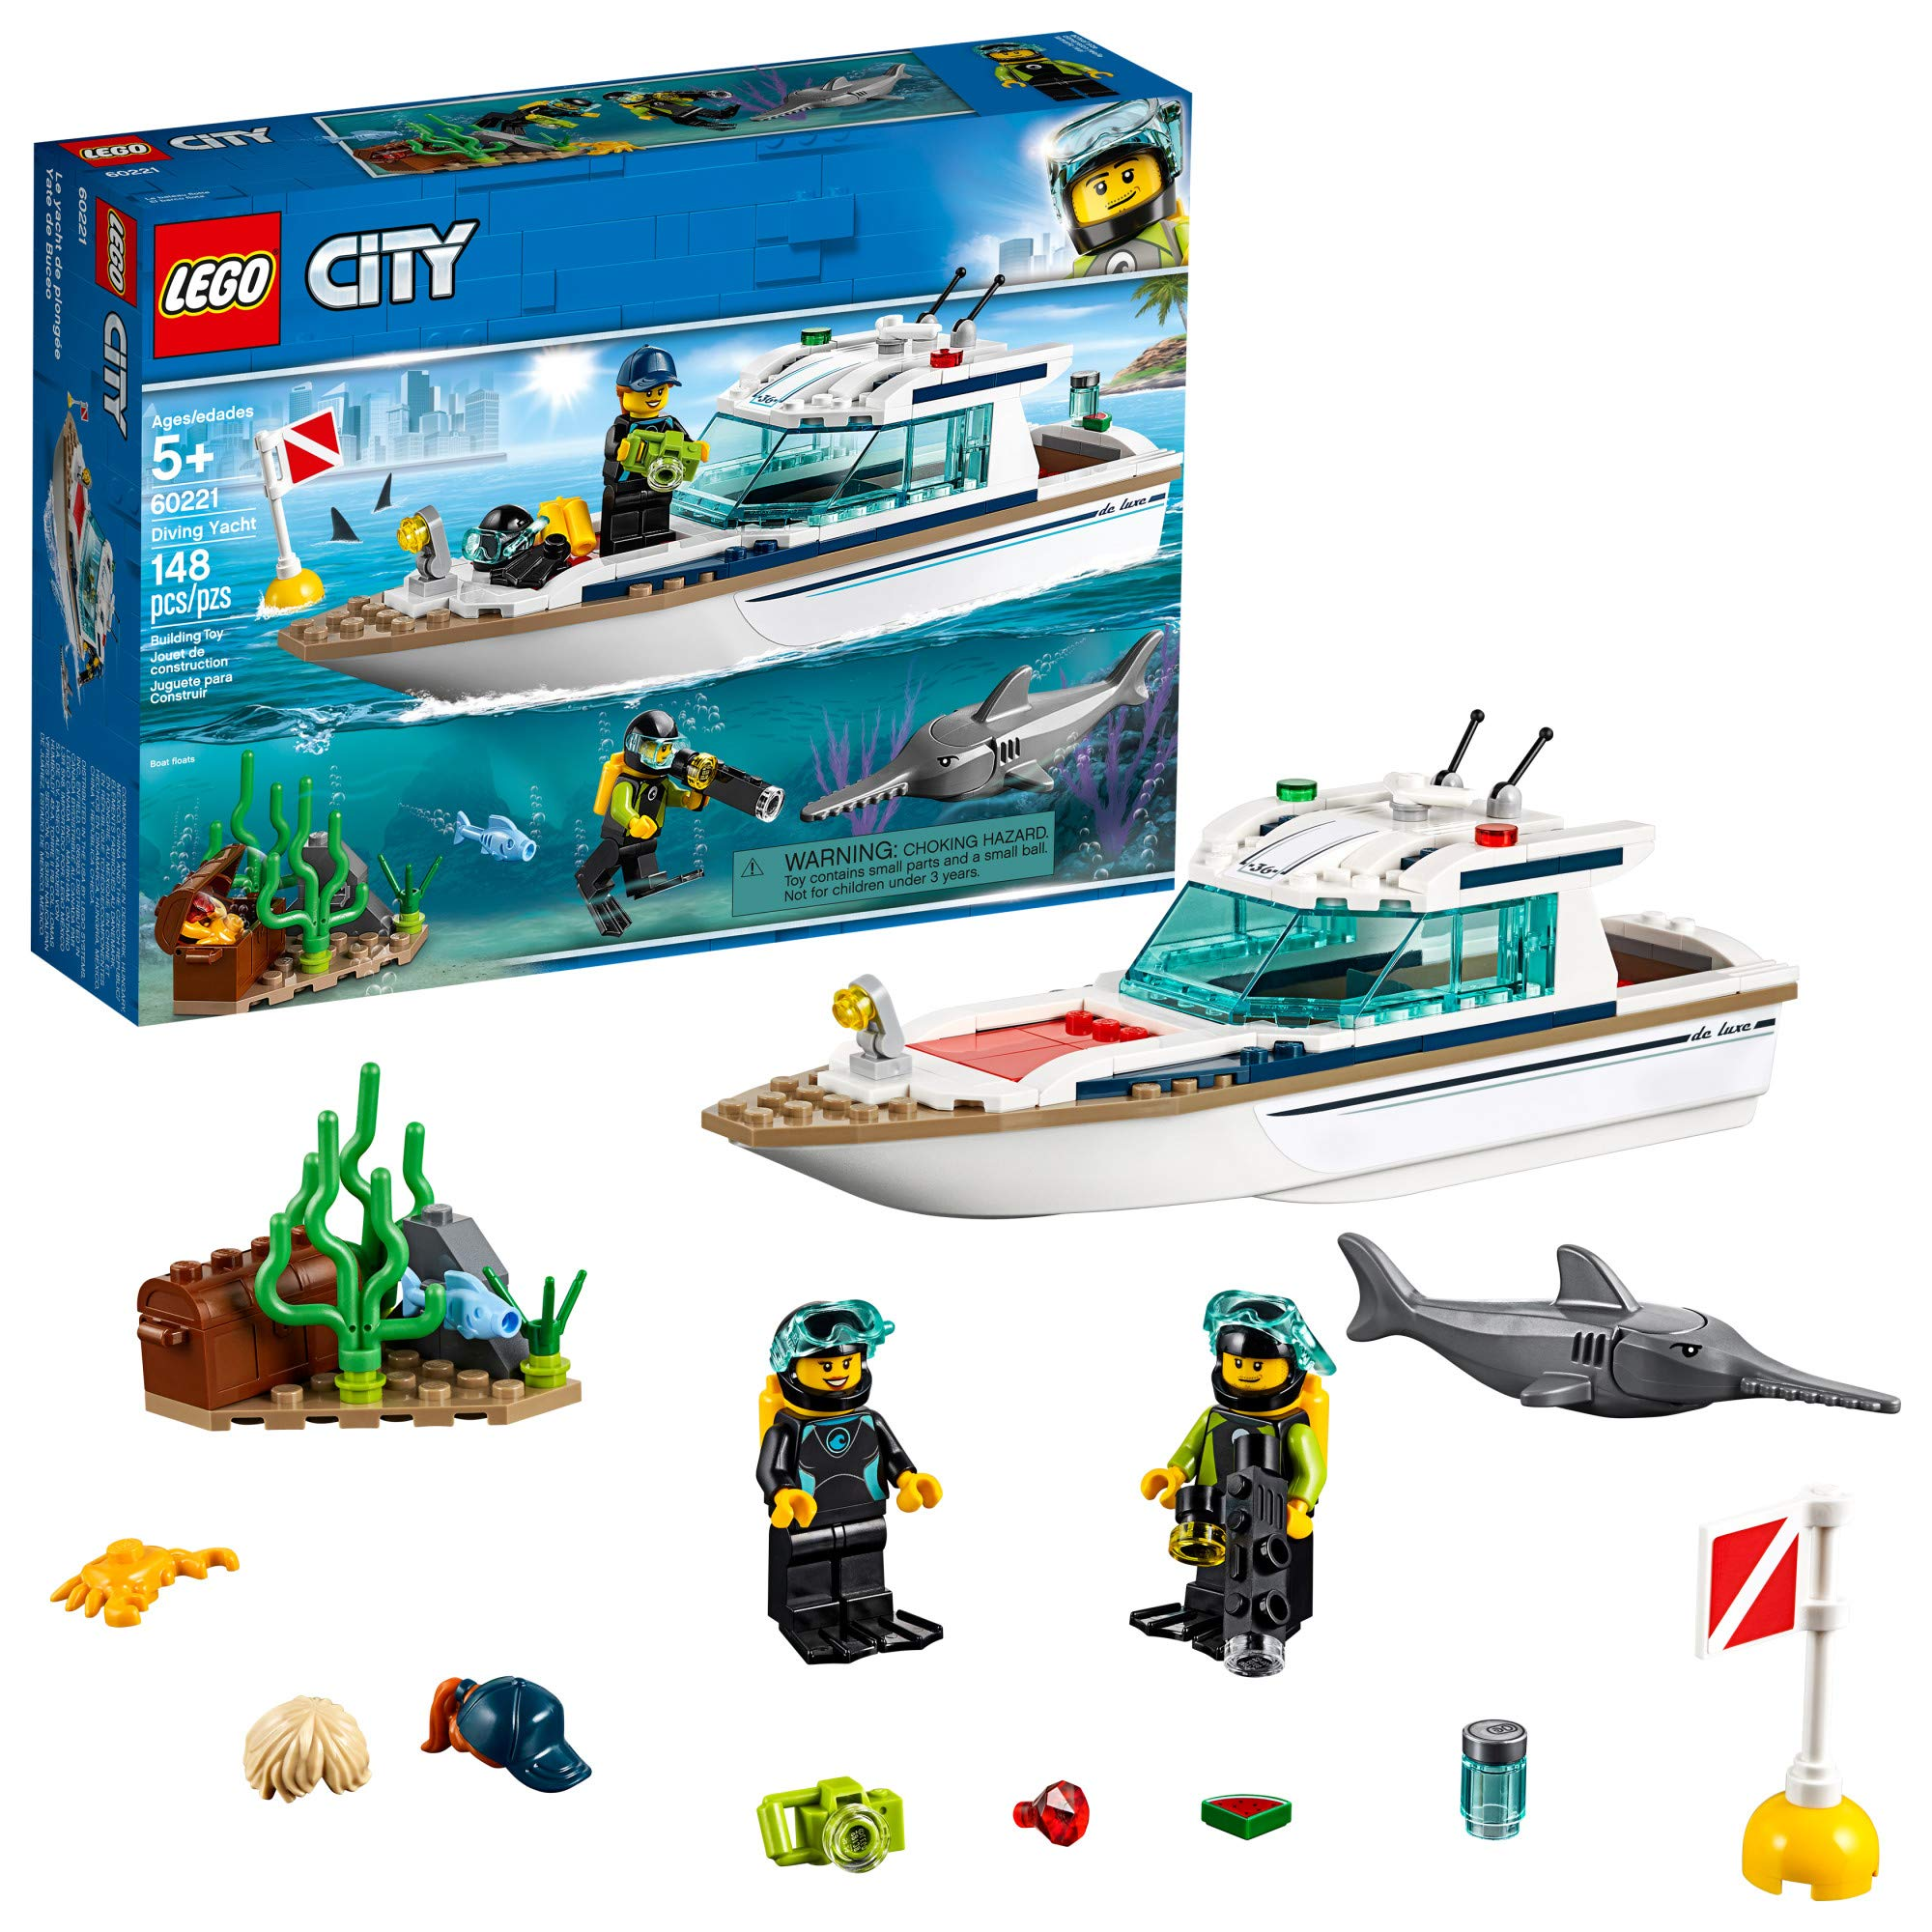 Details about LEGO City Great Vehicles Diving Yacht 60221 Building Kit ,  New 2019 (148 Piece)